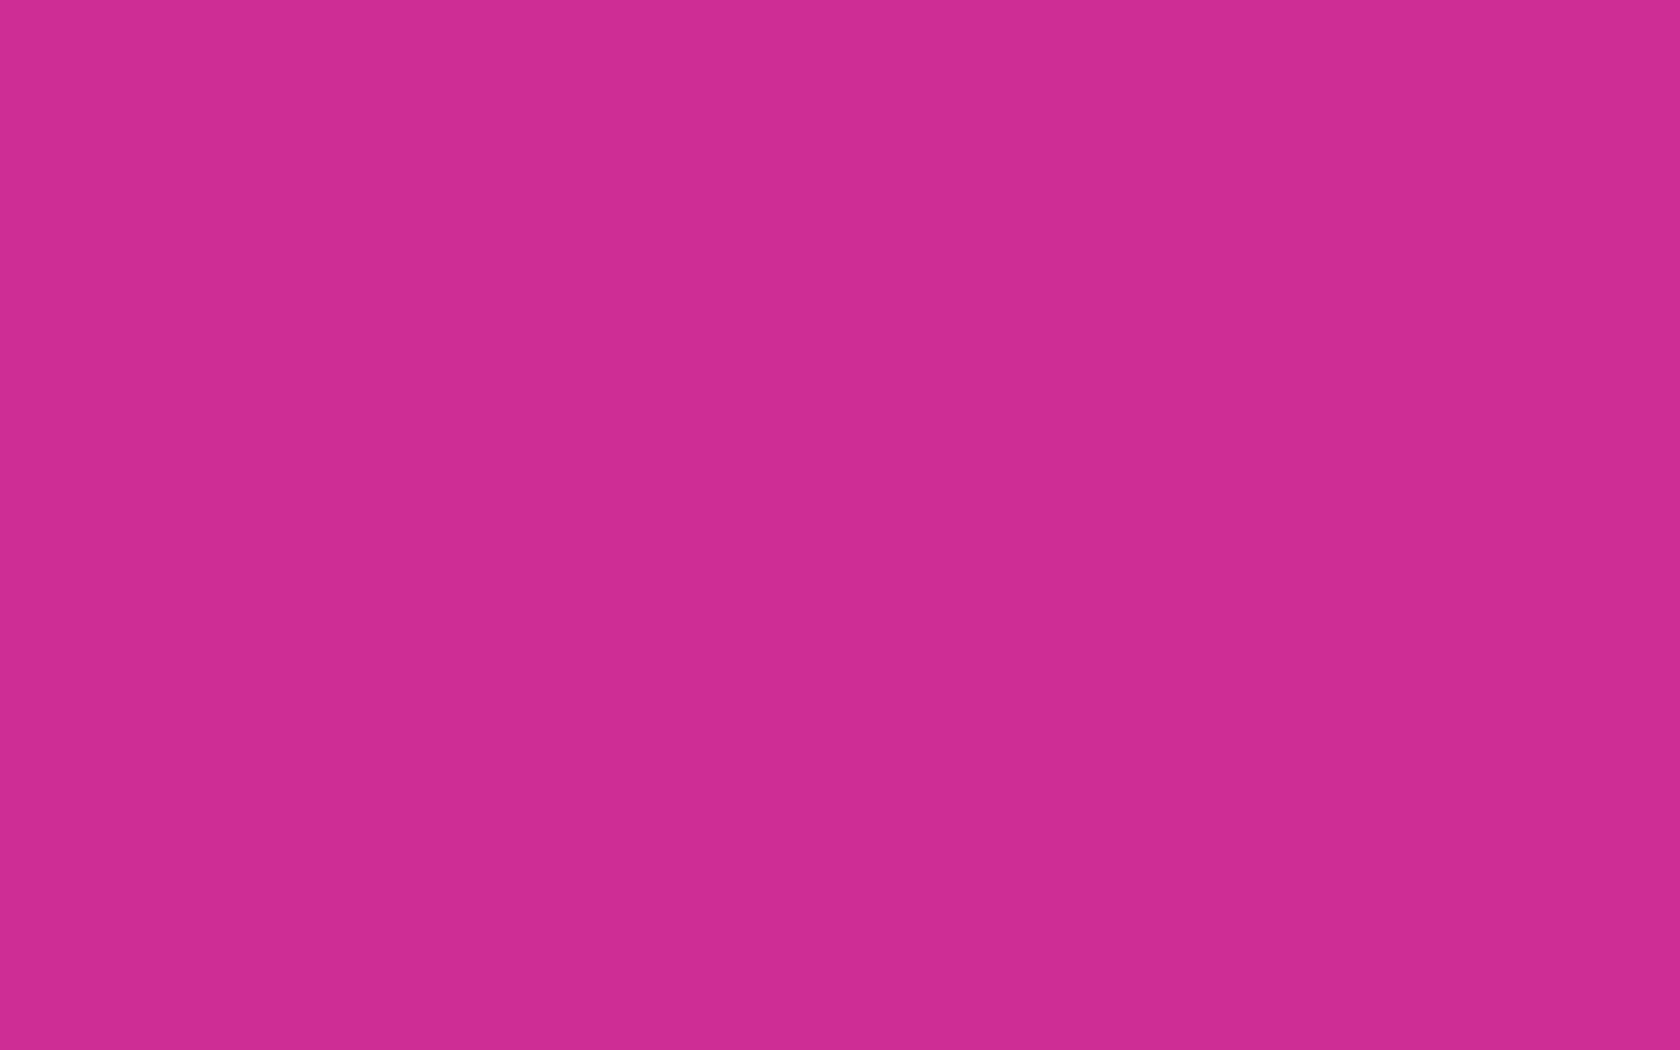 1680x1050 Royal Fuchsia Solid Color Background